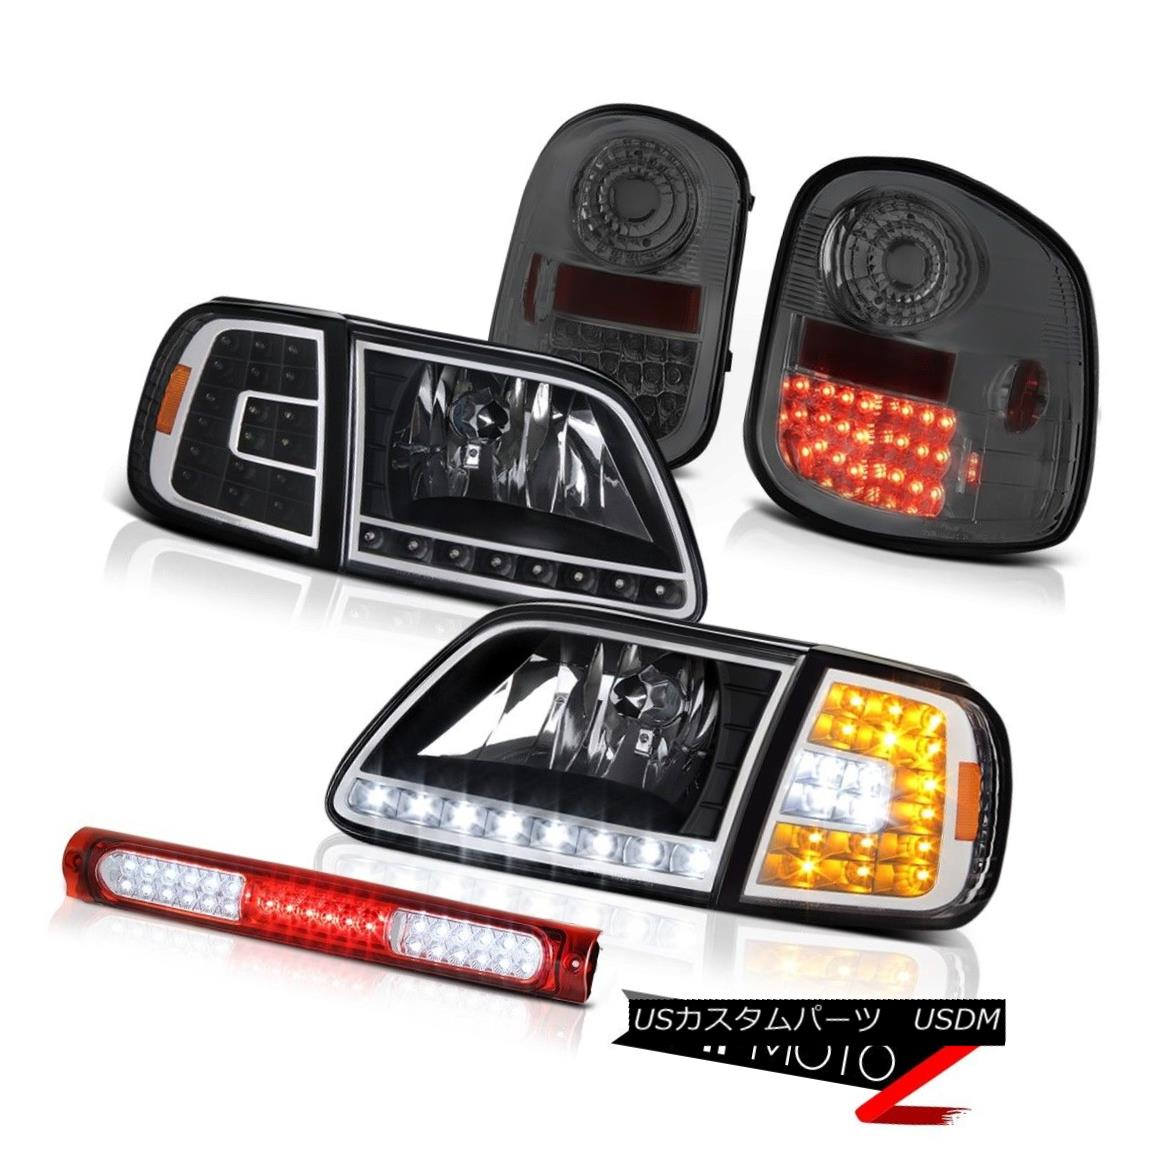 ヘッドライト Headlights LED Bumper Smoke Tail Lights Red Third 97-03 F150 Flareside Lightning ヘッドライトLEDバンパー煙テールライトレッドThird 97-03 F150 Flareside Lightning